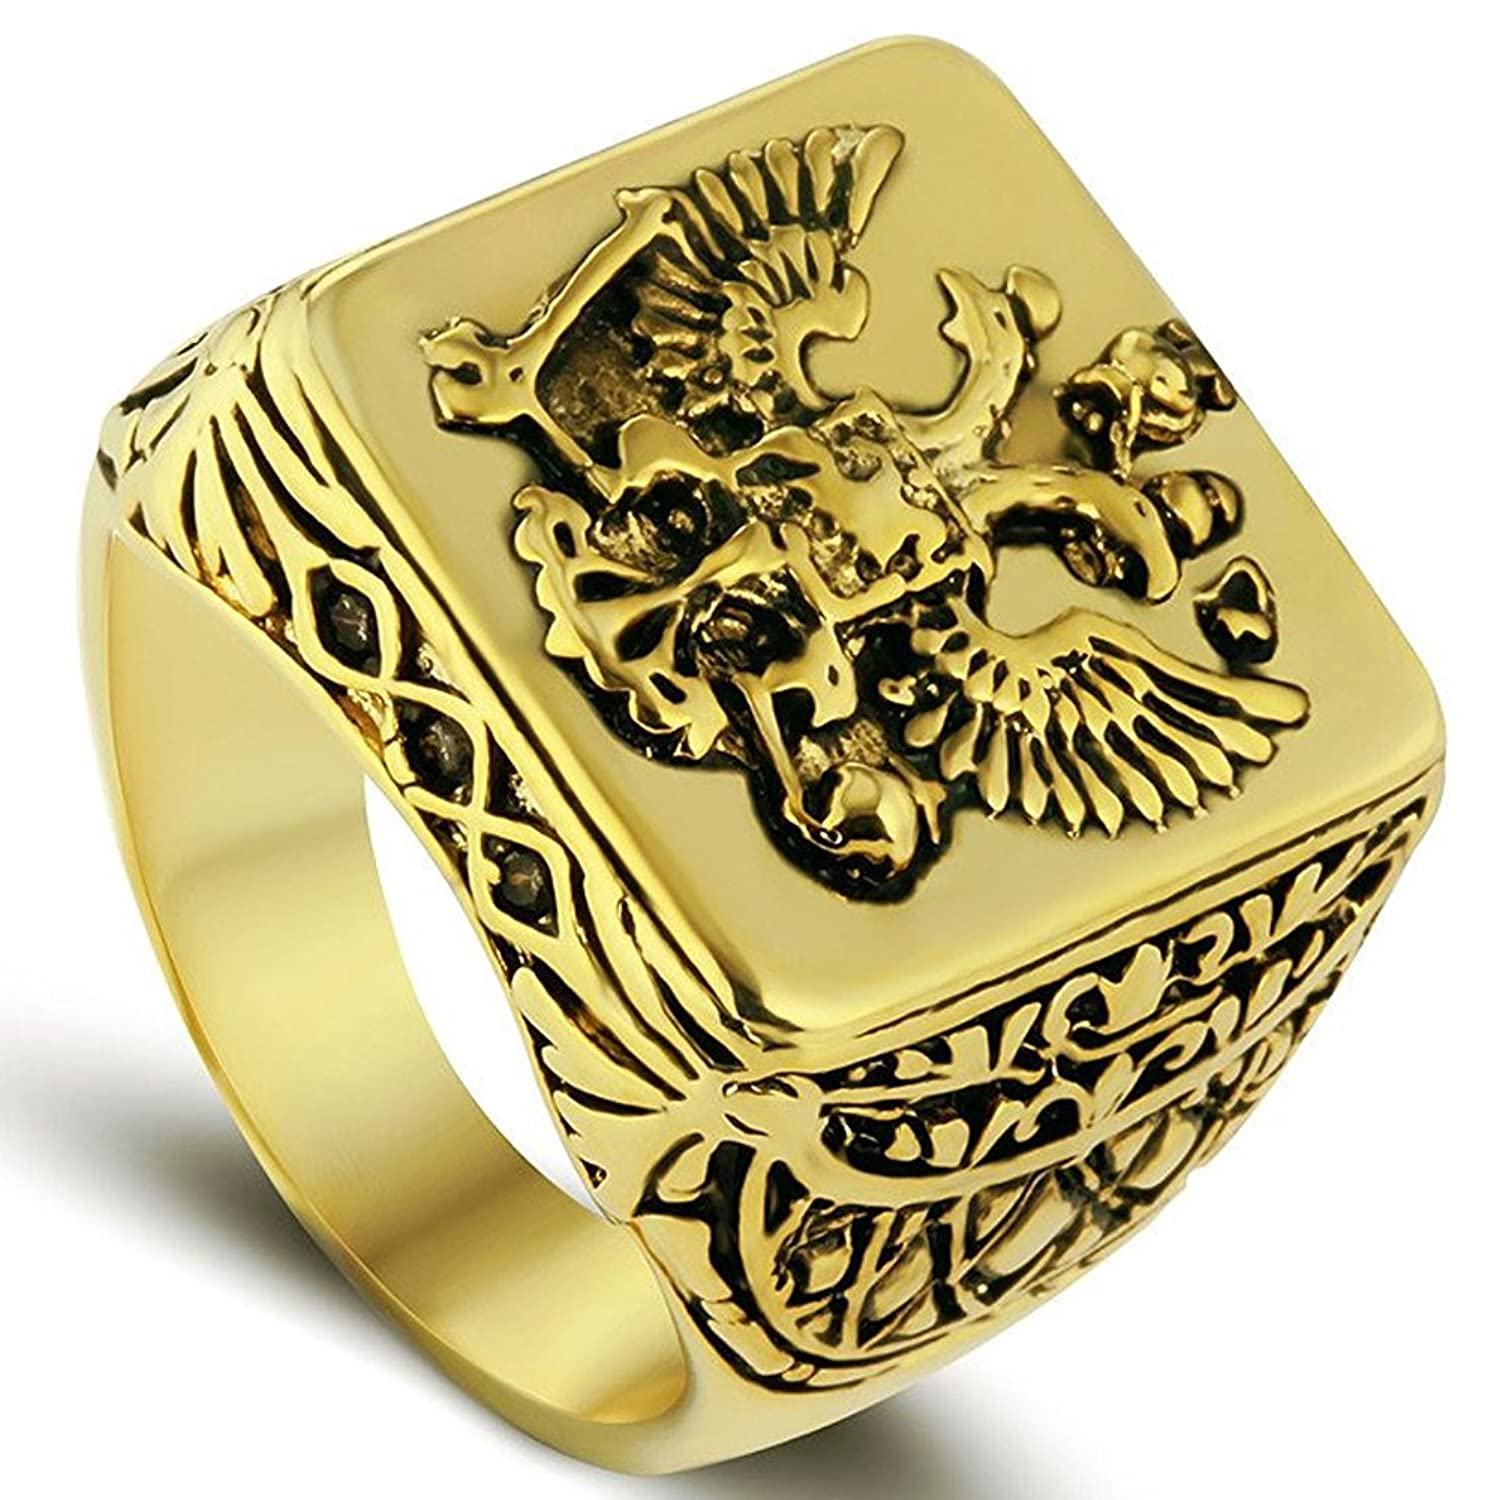 lilileoジュエリーゴールドDouble Headed Imperial EagleリングByzantine EmperorロシアフェデレーションCoat of Arms Signet For Men 'sリングジュエリー B0762DY5R8 7